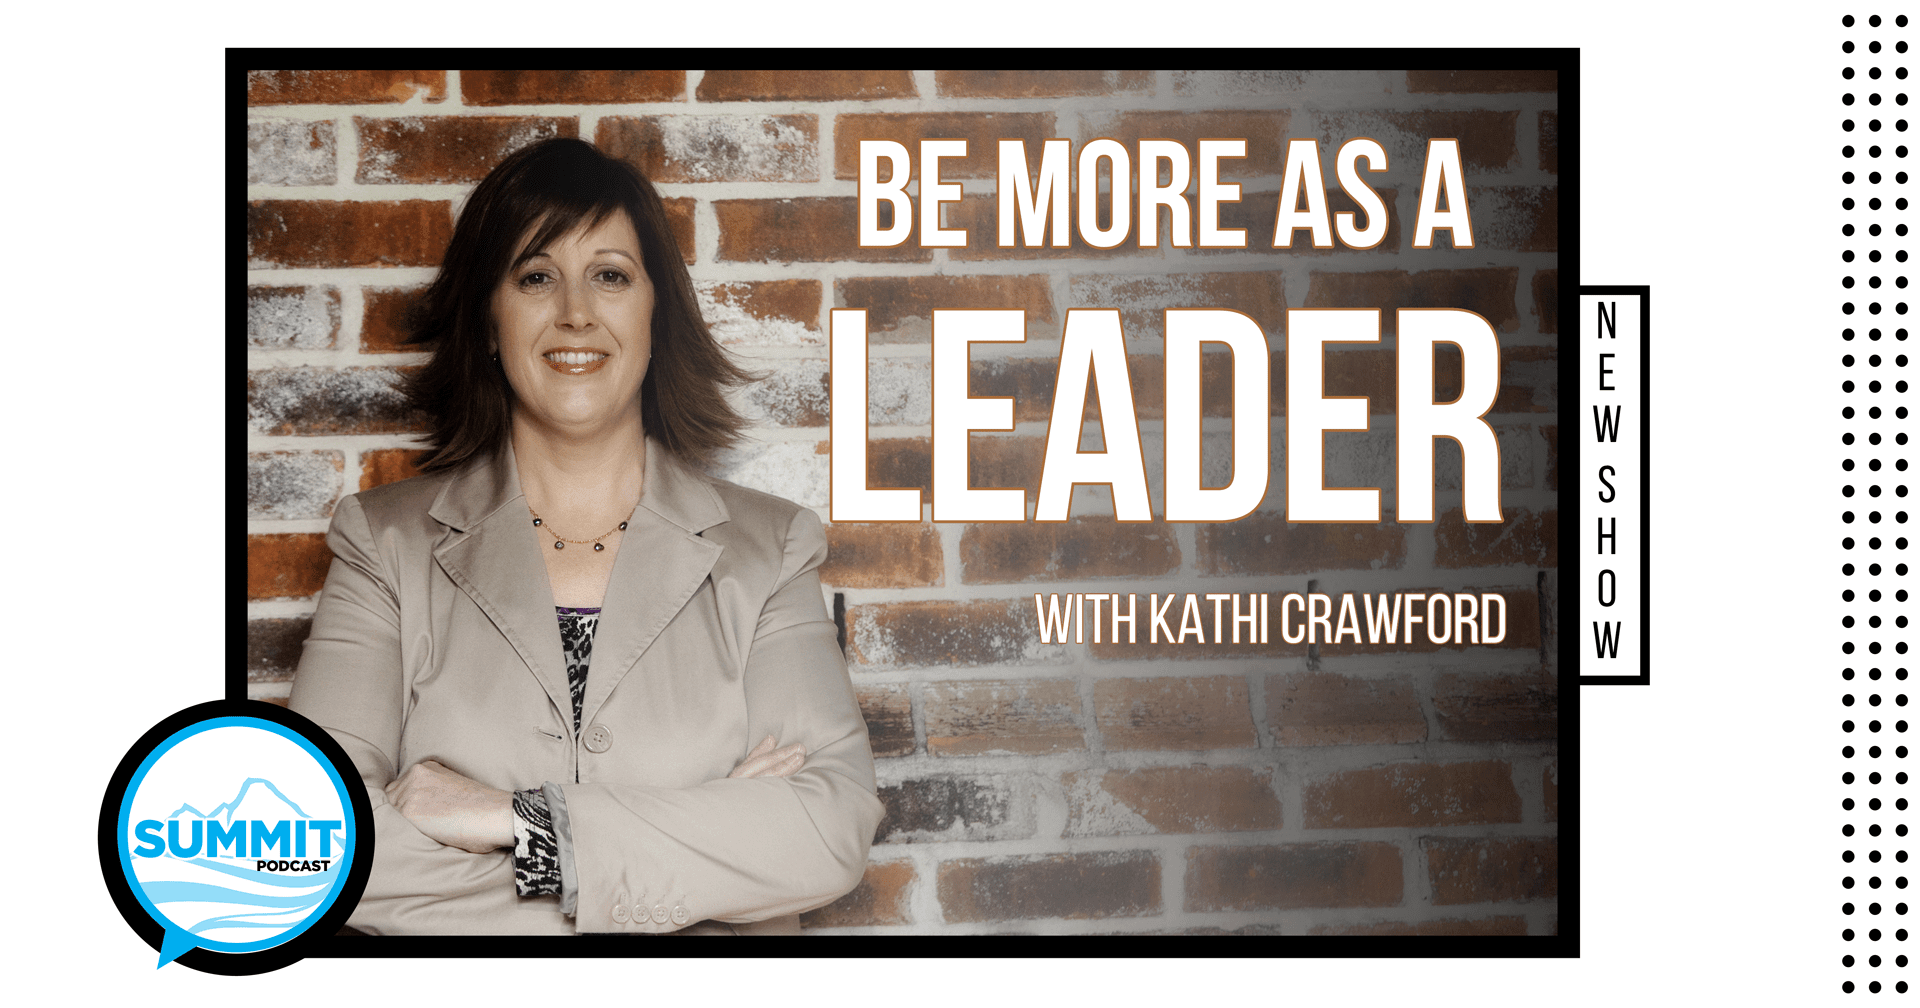 Summit Podcast - Be more as a leader